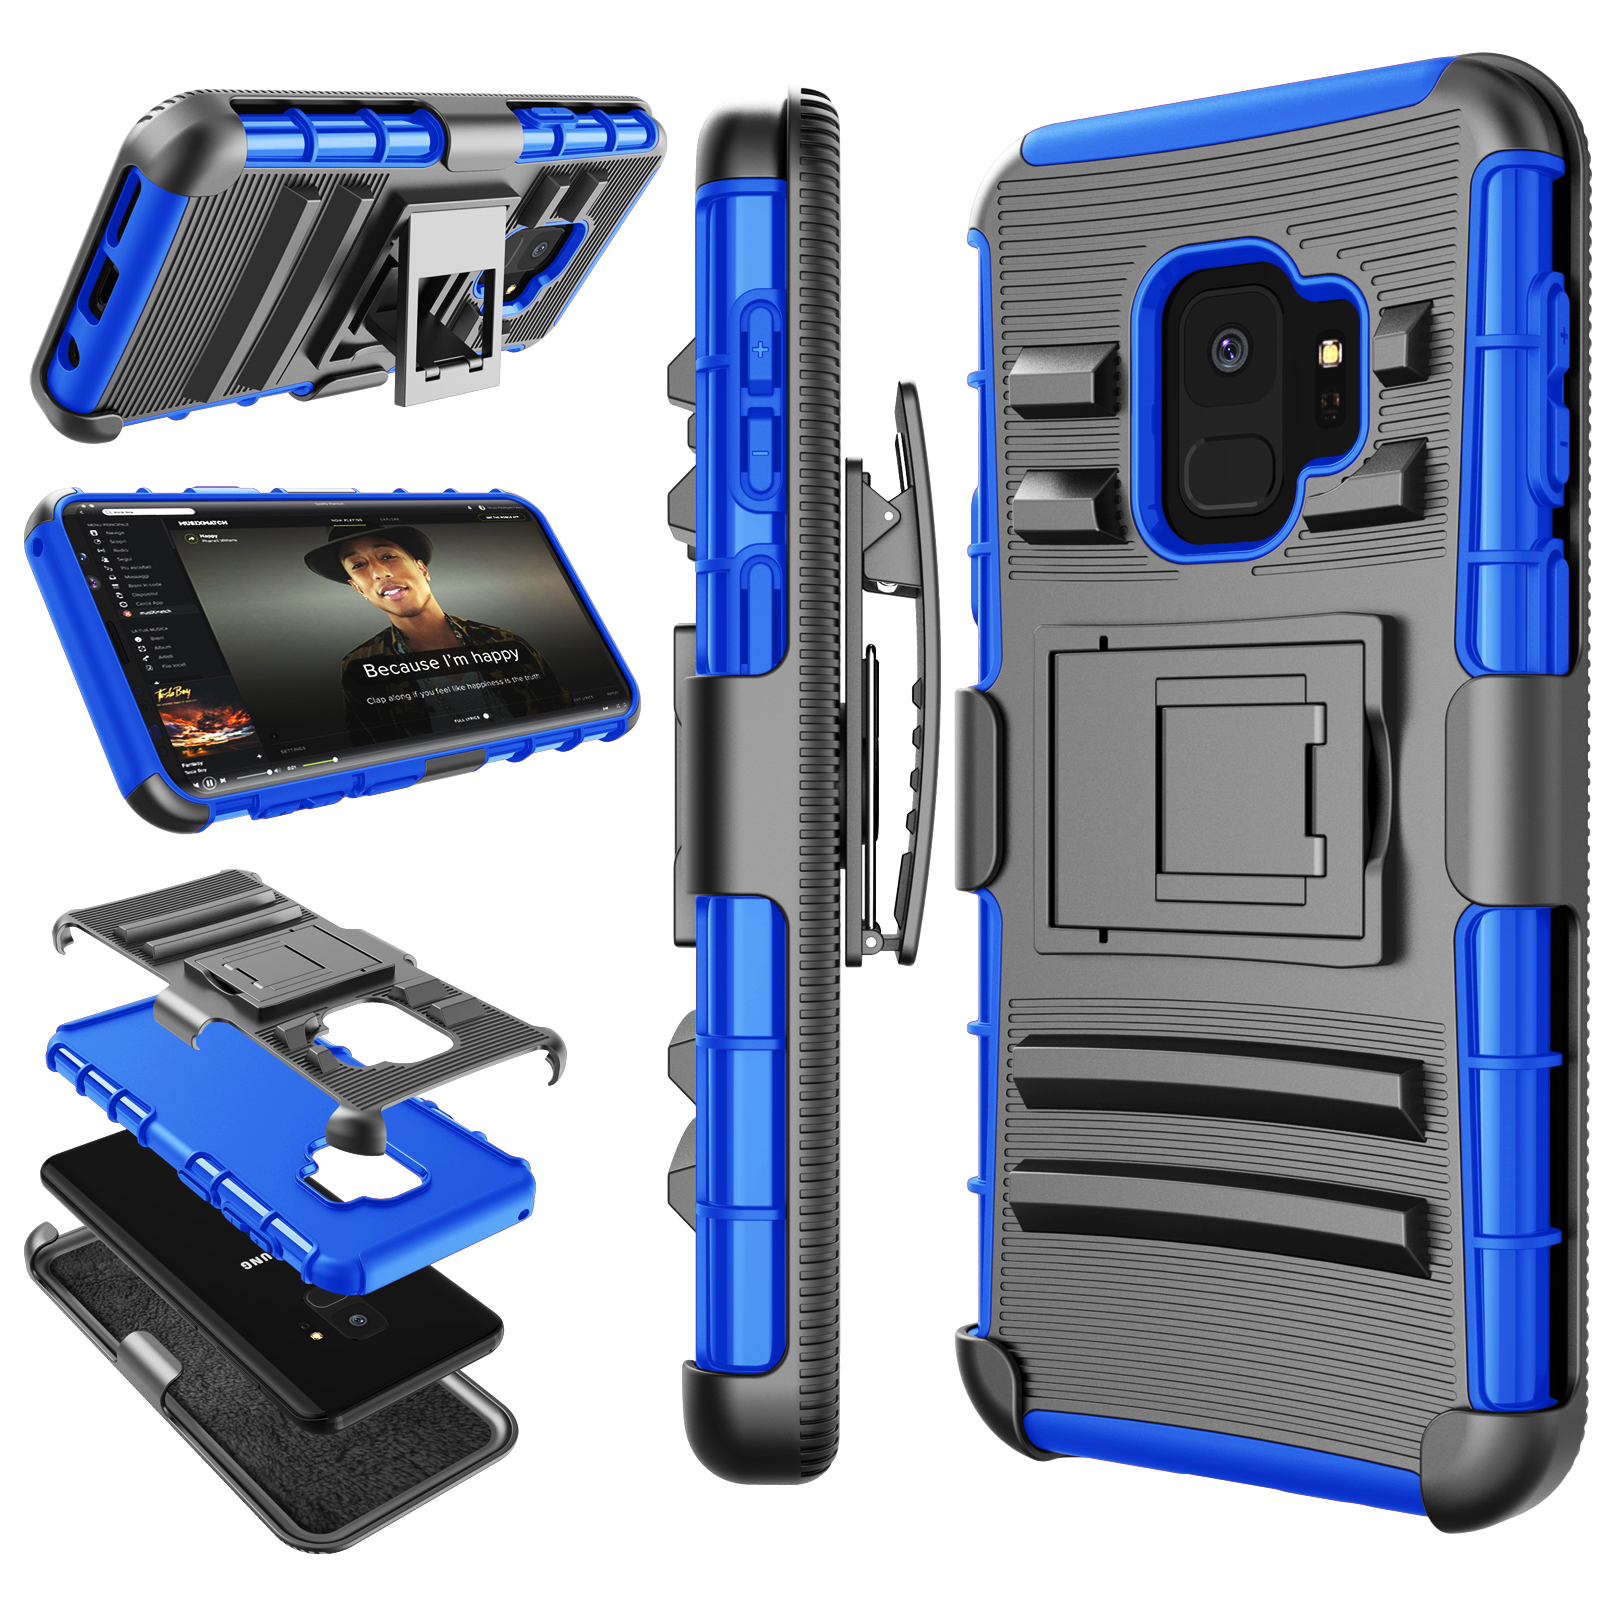 Galaxy S9 Case, Samsung Galaxy S9 Holster Belt, S9 Sturdy Case, Tekcoo [Hoplite] Shock Absorbing [Relic] Secure Locking Clip Defender Heavy Full Body Kickstand Carrying Armor Camouflage Cases Cover